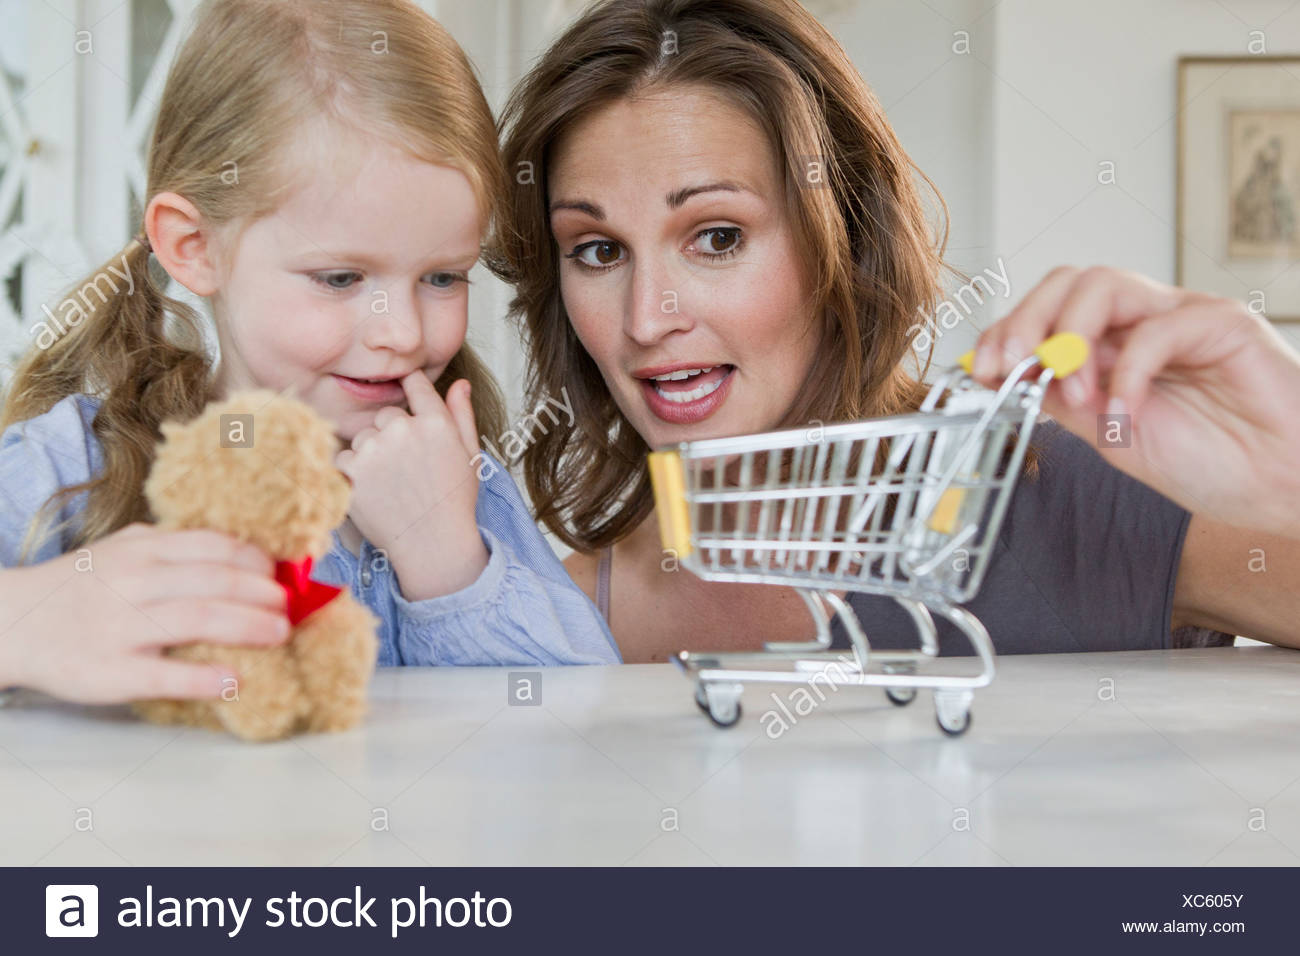 Mother and daughter playing with toys - Stock Image